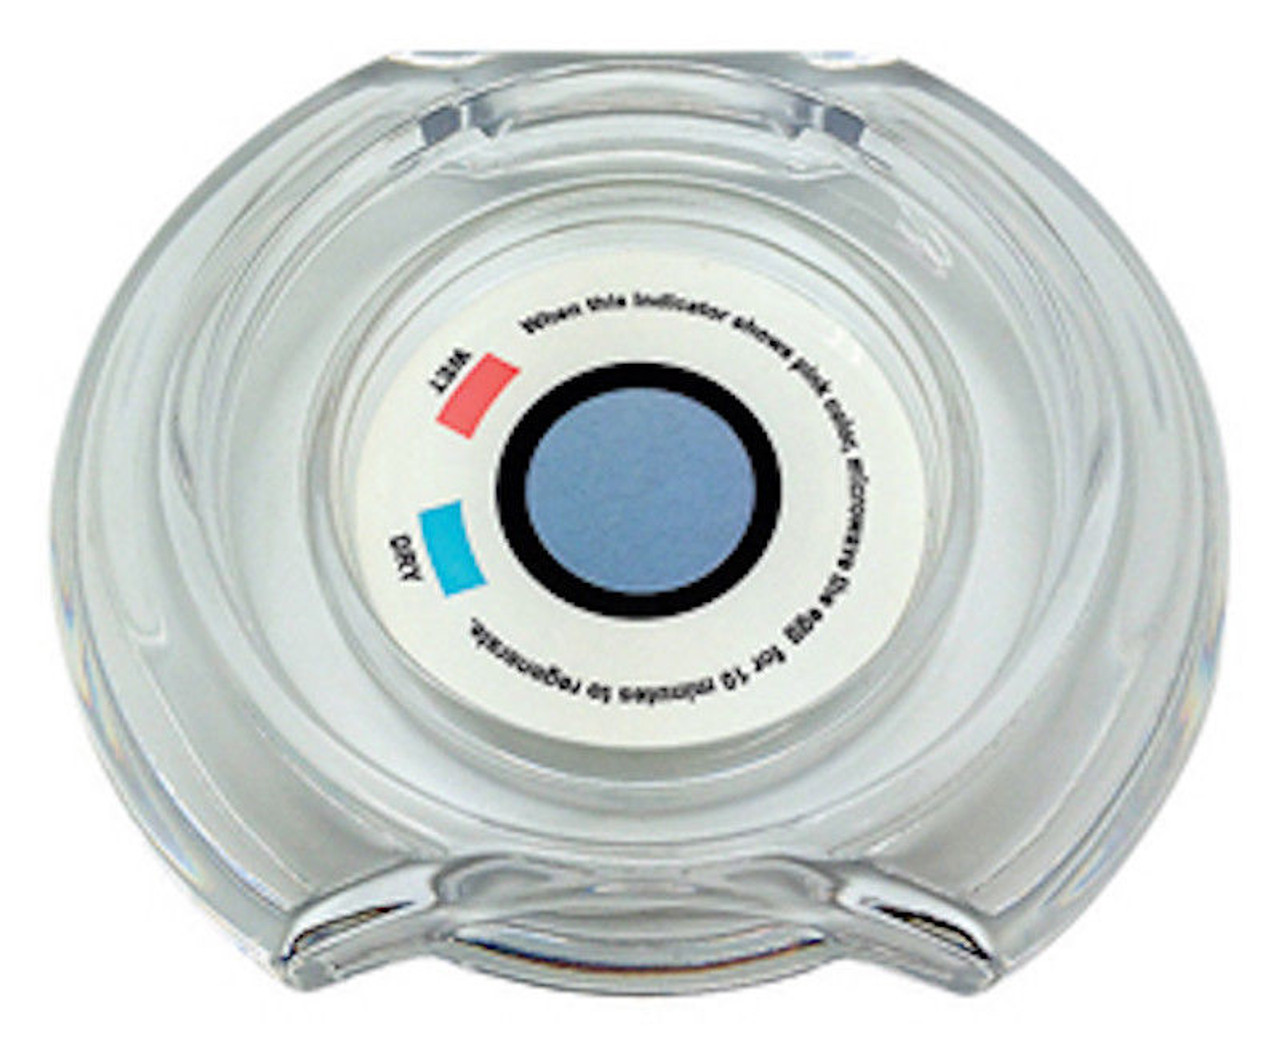 Cli~mate CLI-DH200 Dehumidifier Egg - Reduces Dampness and Absorbs Odours